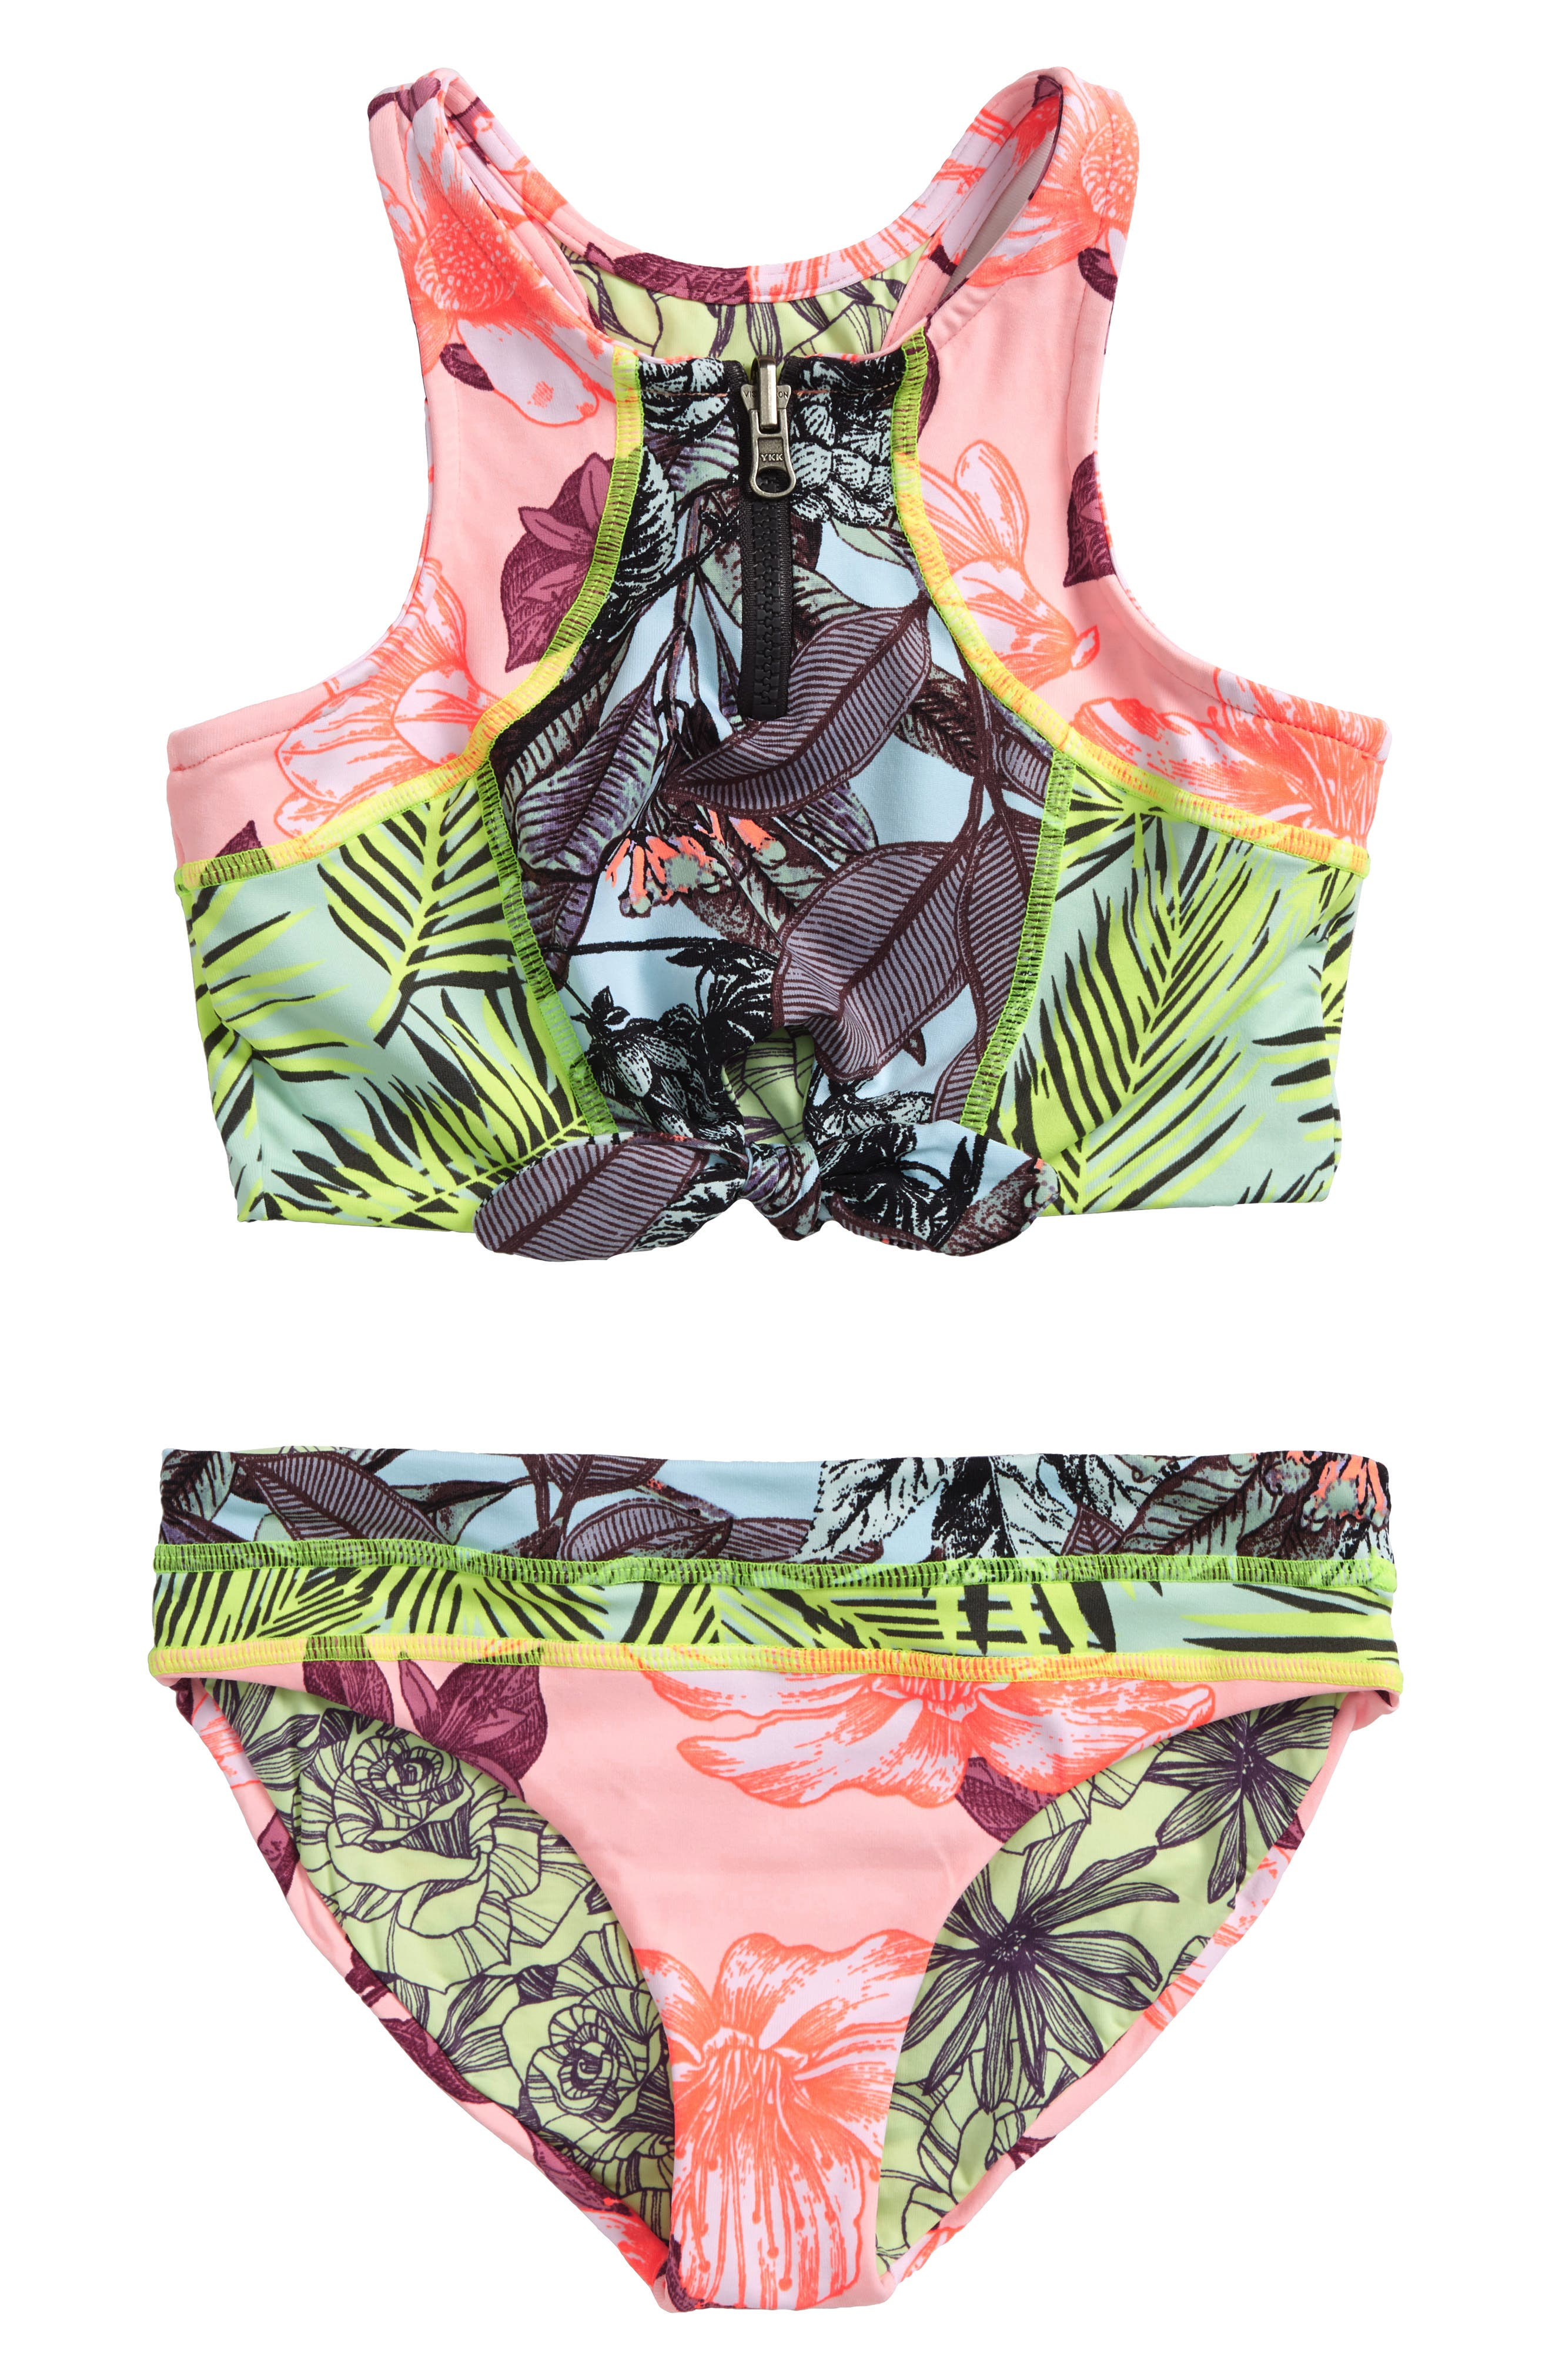 Cacti Hotel Reversible Two-Piece Swimsuit,                             Main thumbnail 1, color,                             650